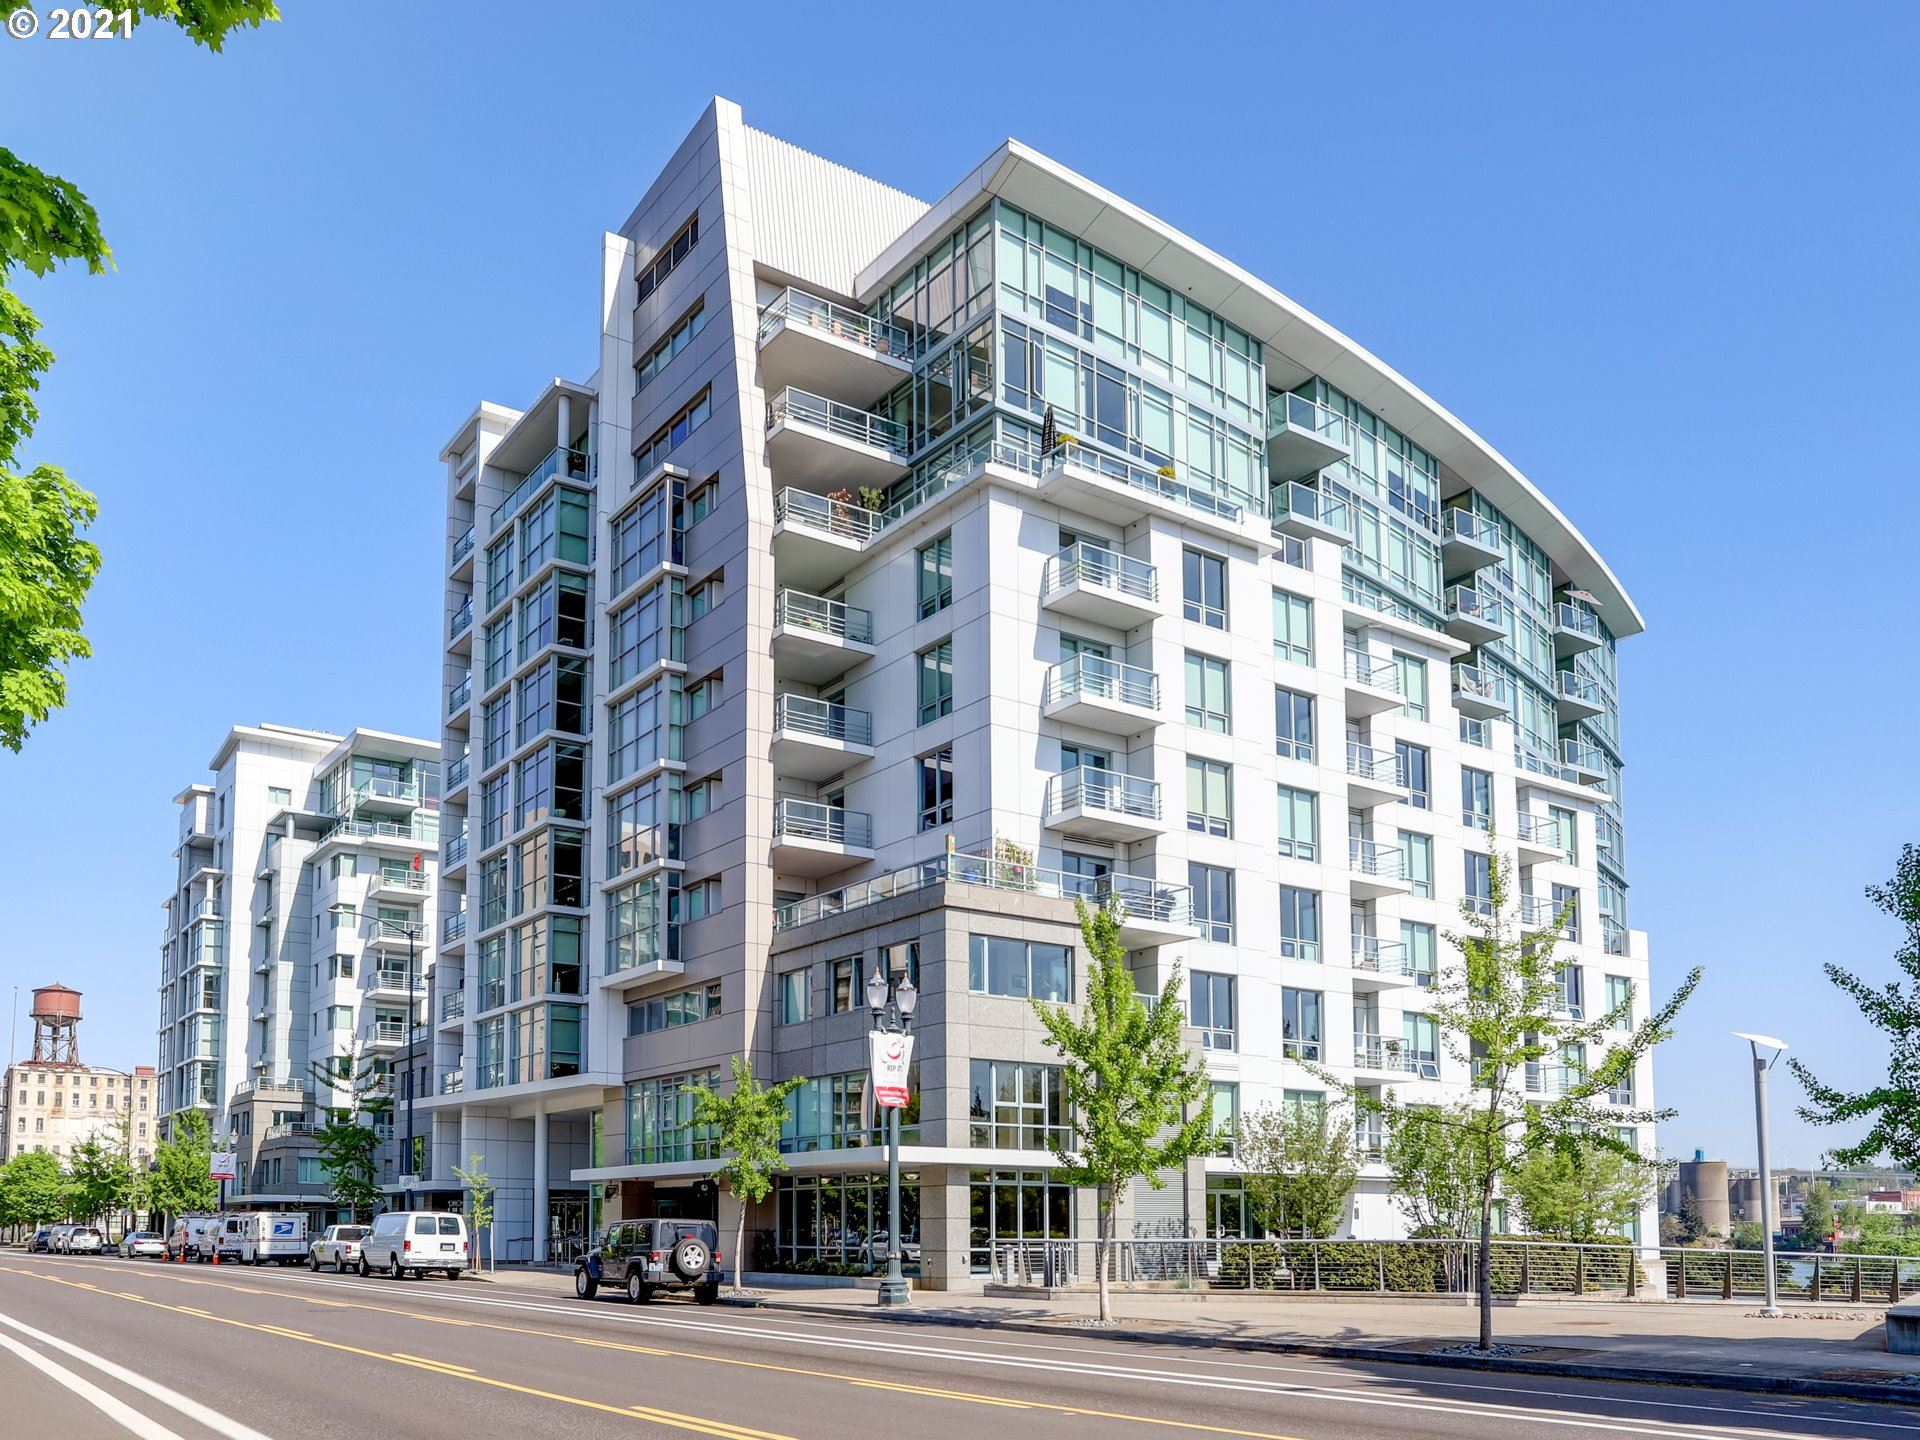 1260 NW NAITO PKWY #705, Portland, OR 97209 - MLS#: 21118777